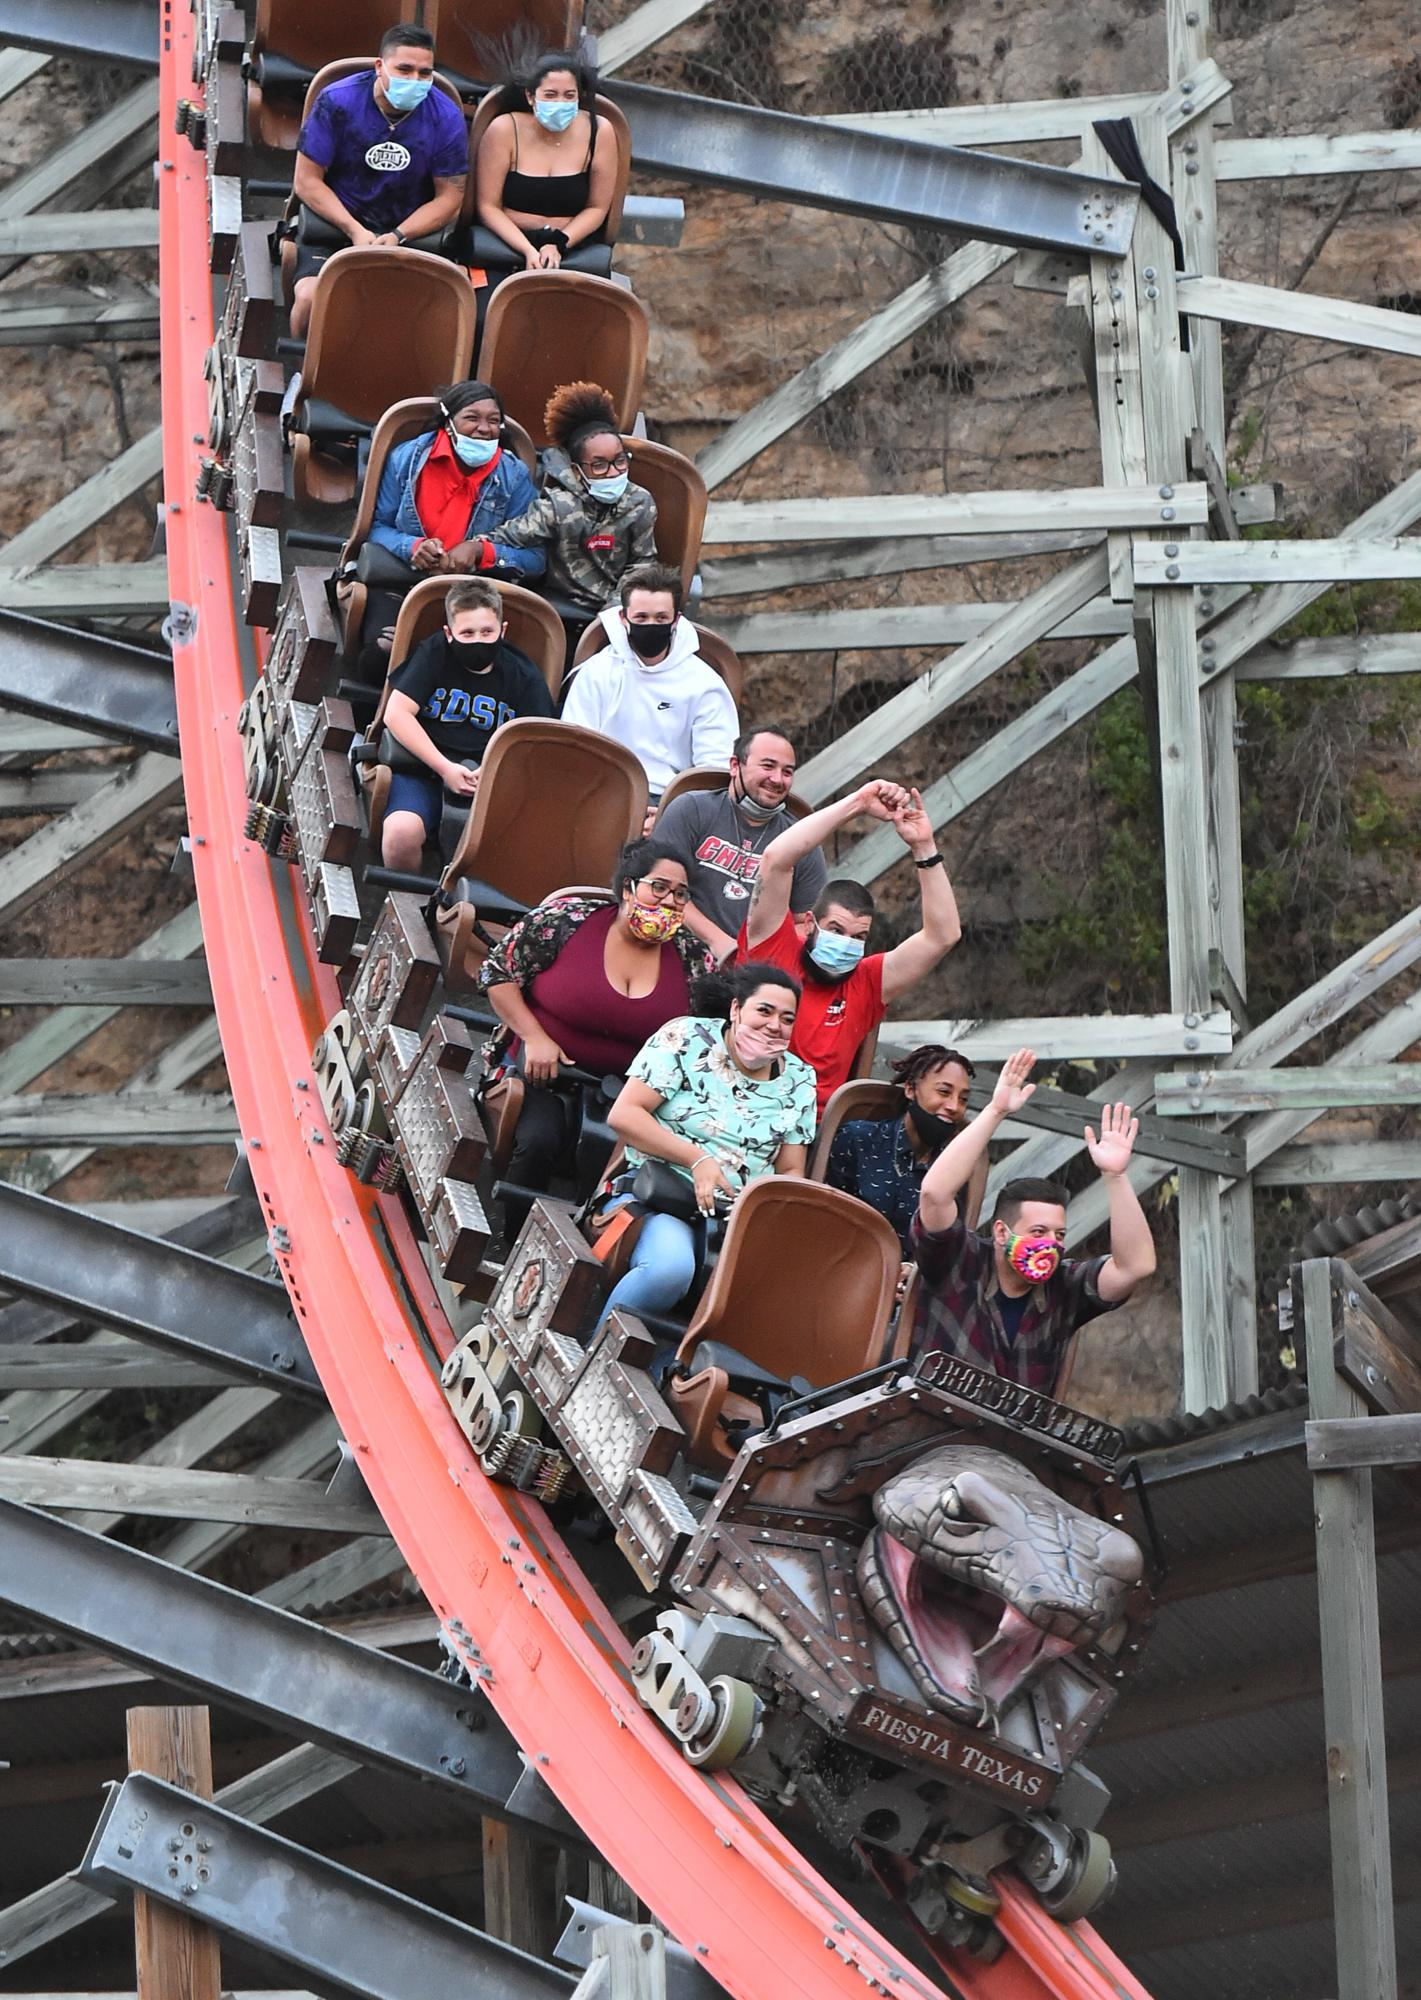 Following Express-News report, city inspectors to determine if Six Flags Fiesta Texas is complying with COVID-19 rules